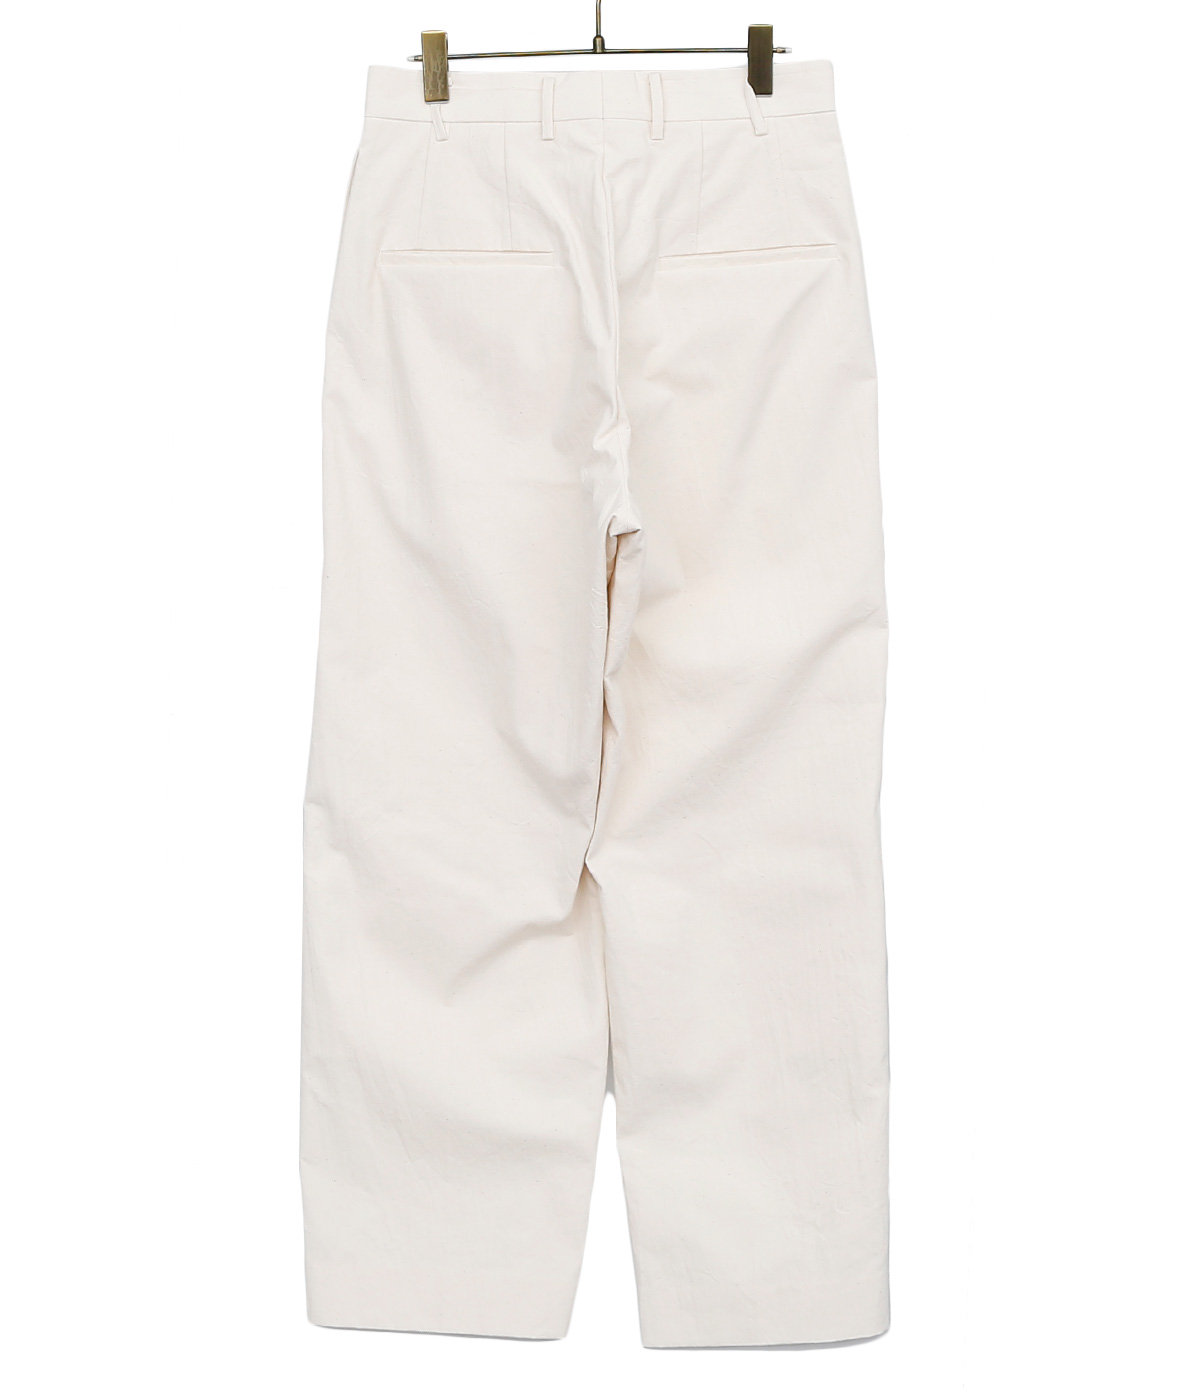 WIDE TAPERED PANTS A